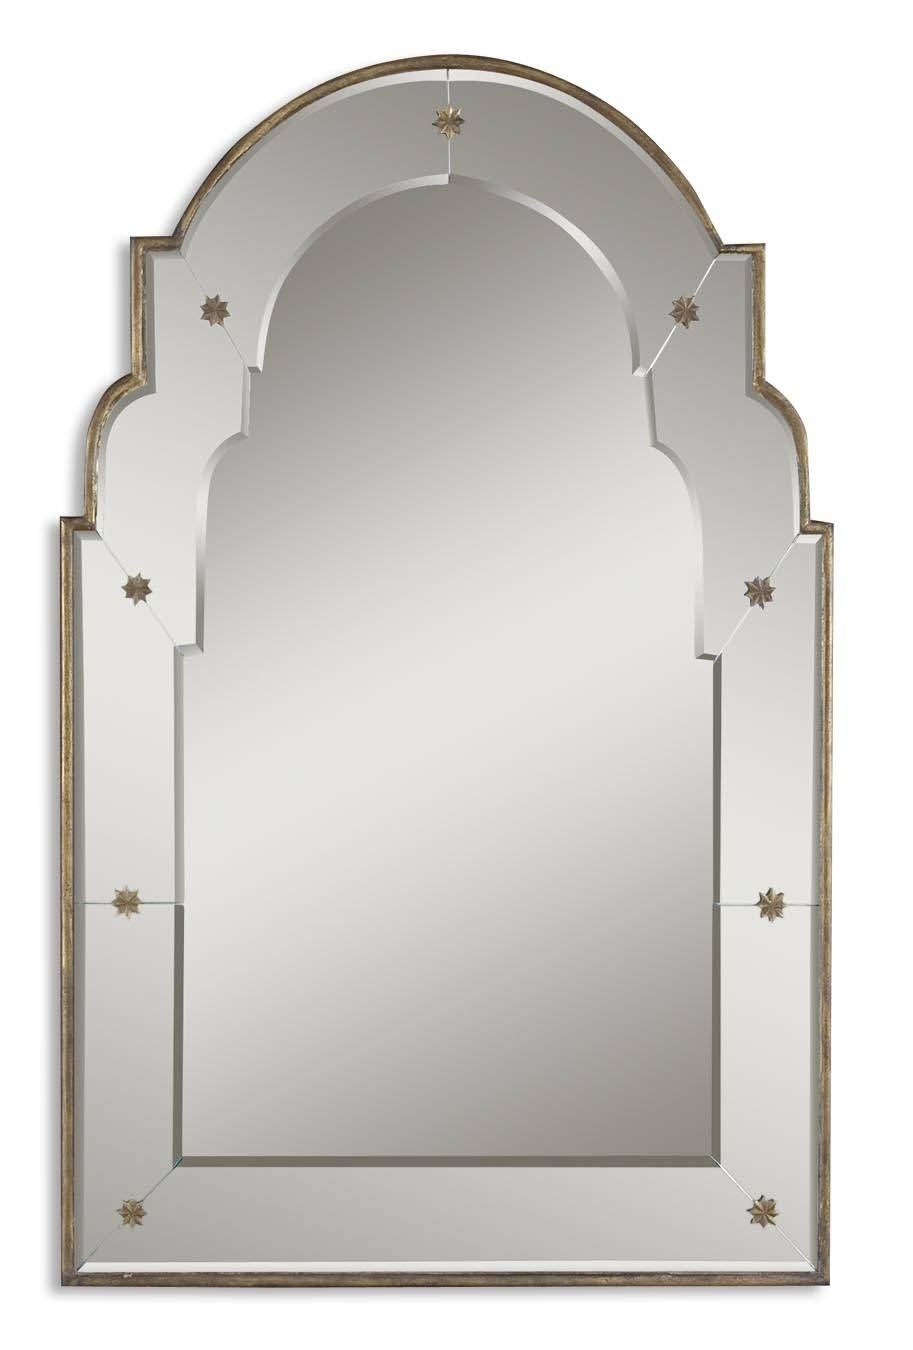 Uttermost Gella Small Arched Mirror 12595 B within Gold Arch Mirrors (Image 23 of 25)